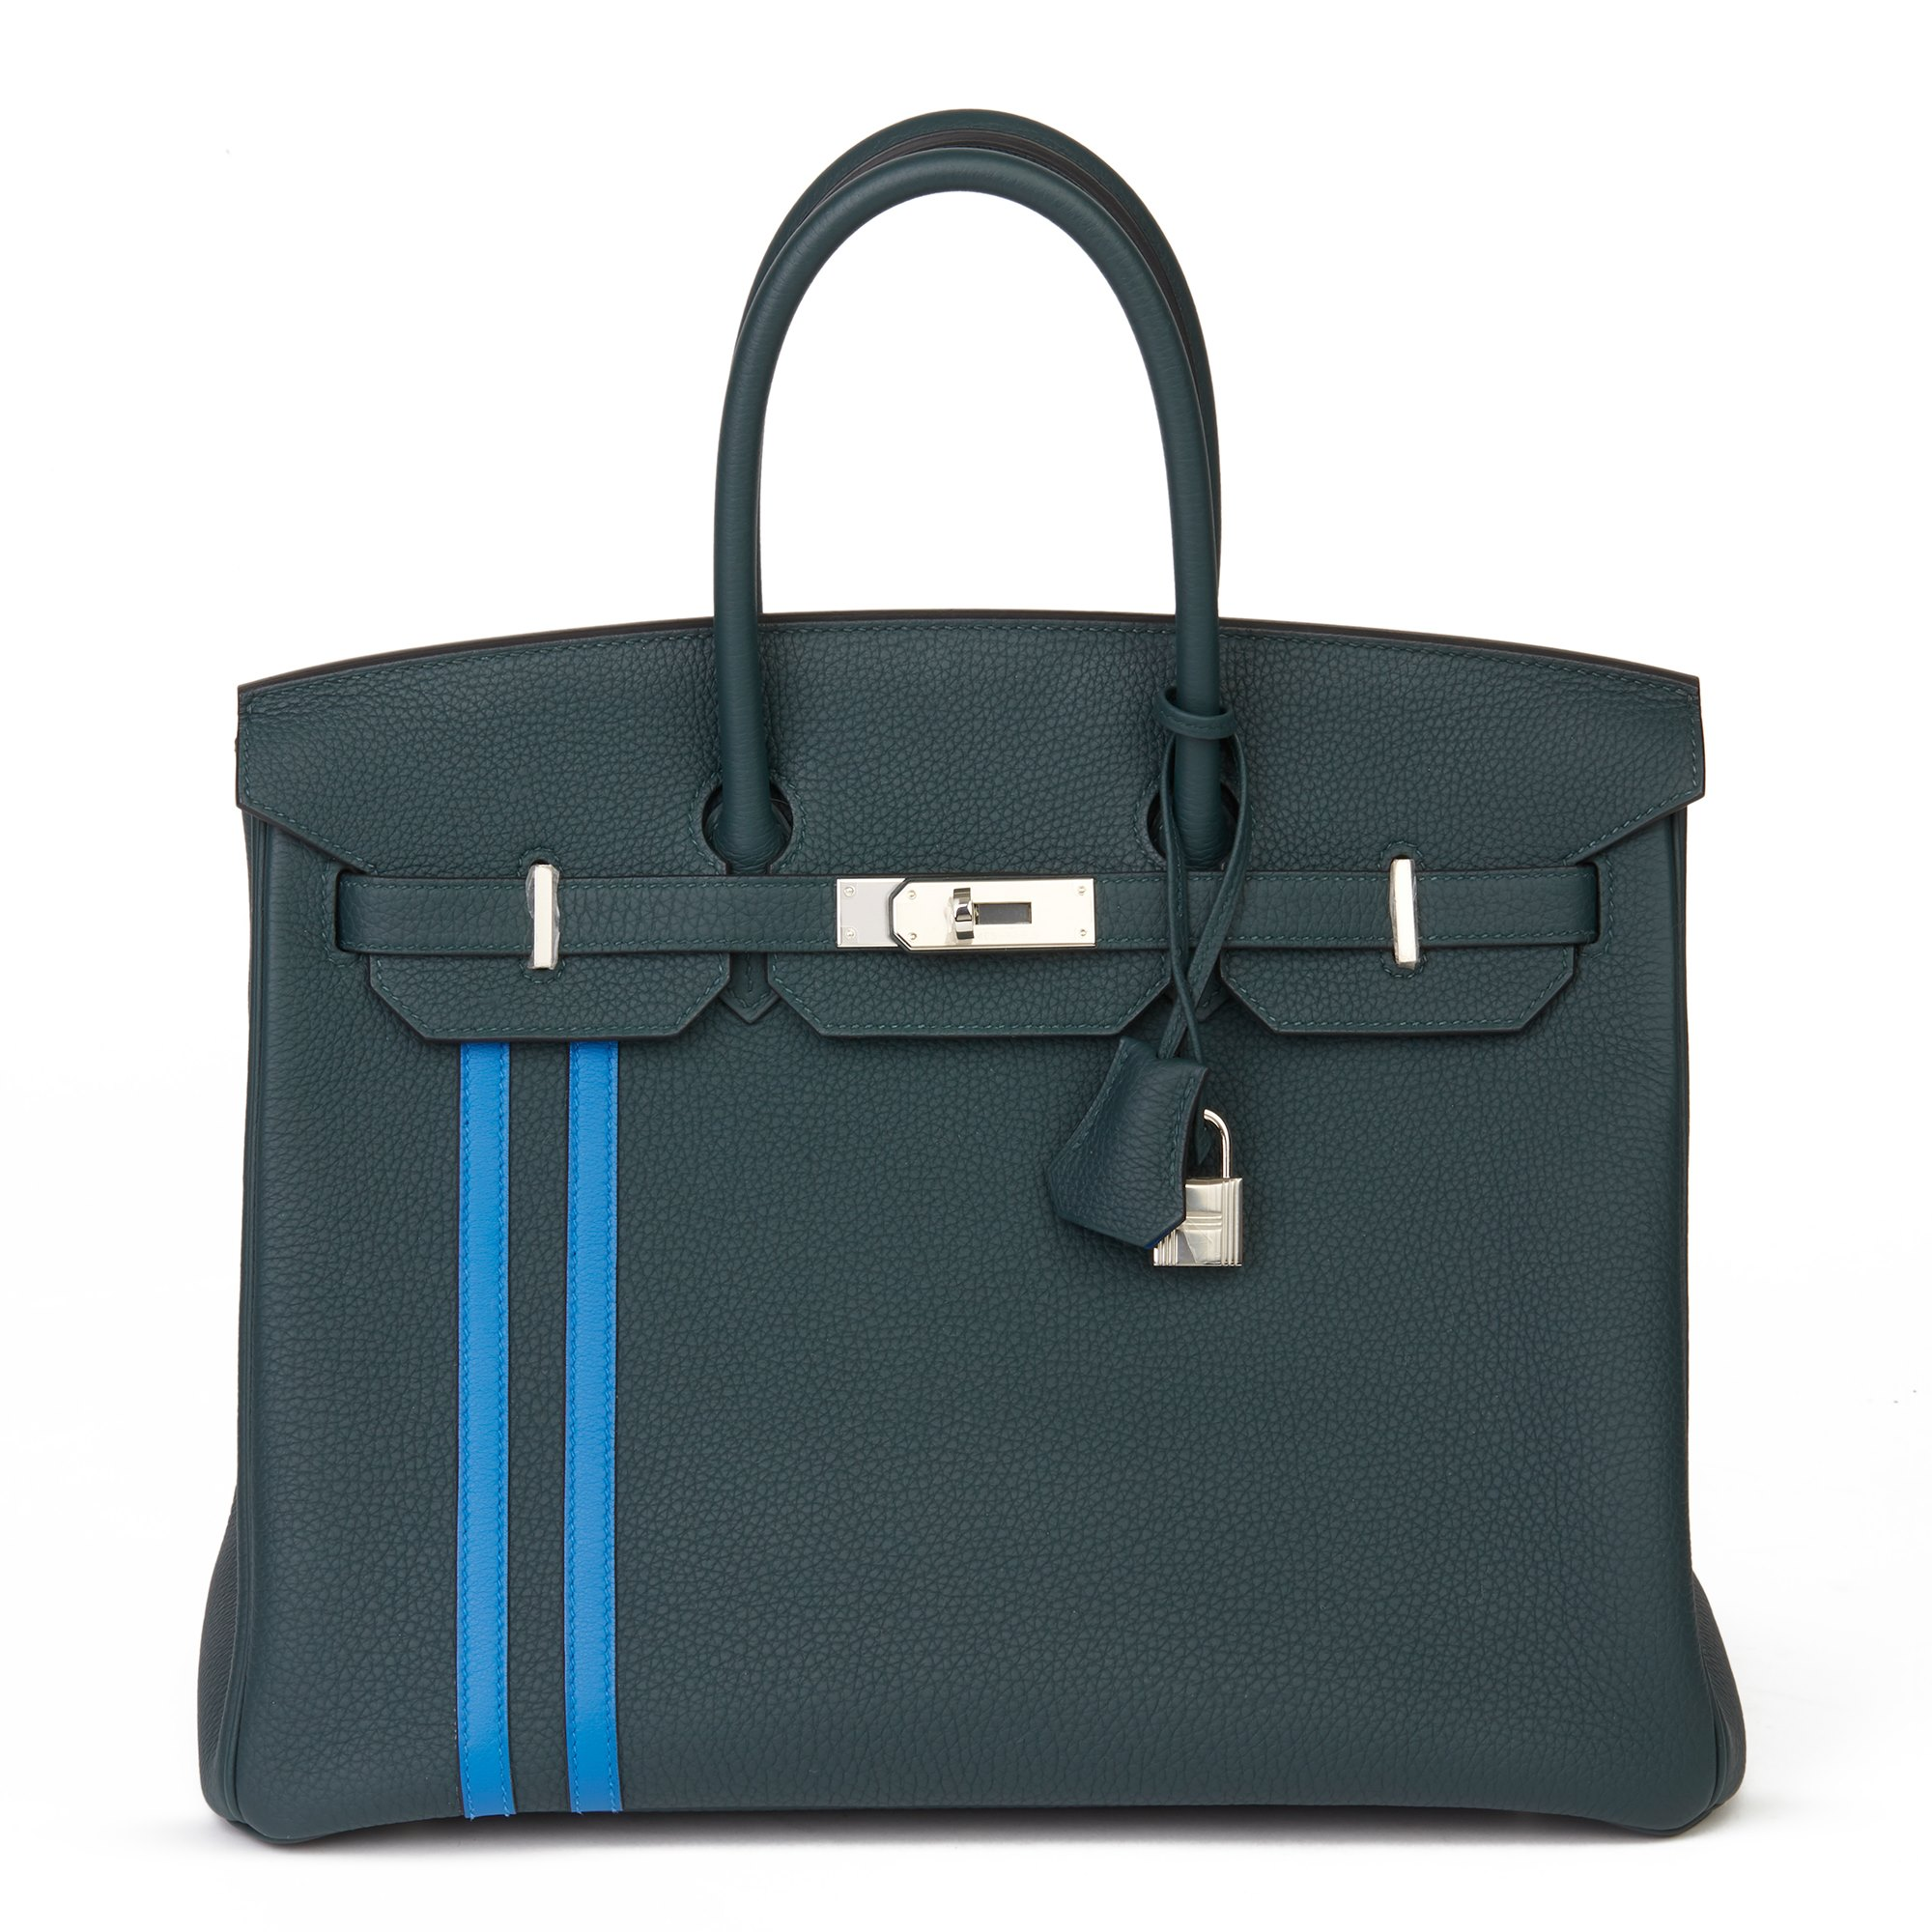 Hermès Vert Cypres Togo Leather & Bleu Zellige Swift Leather Officier Birkin 35cm